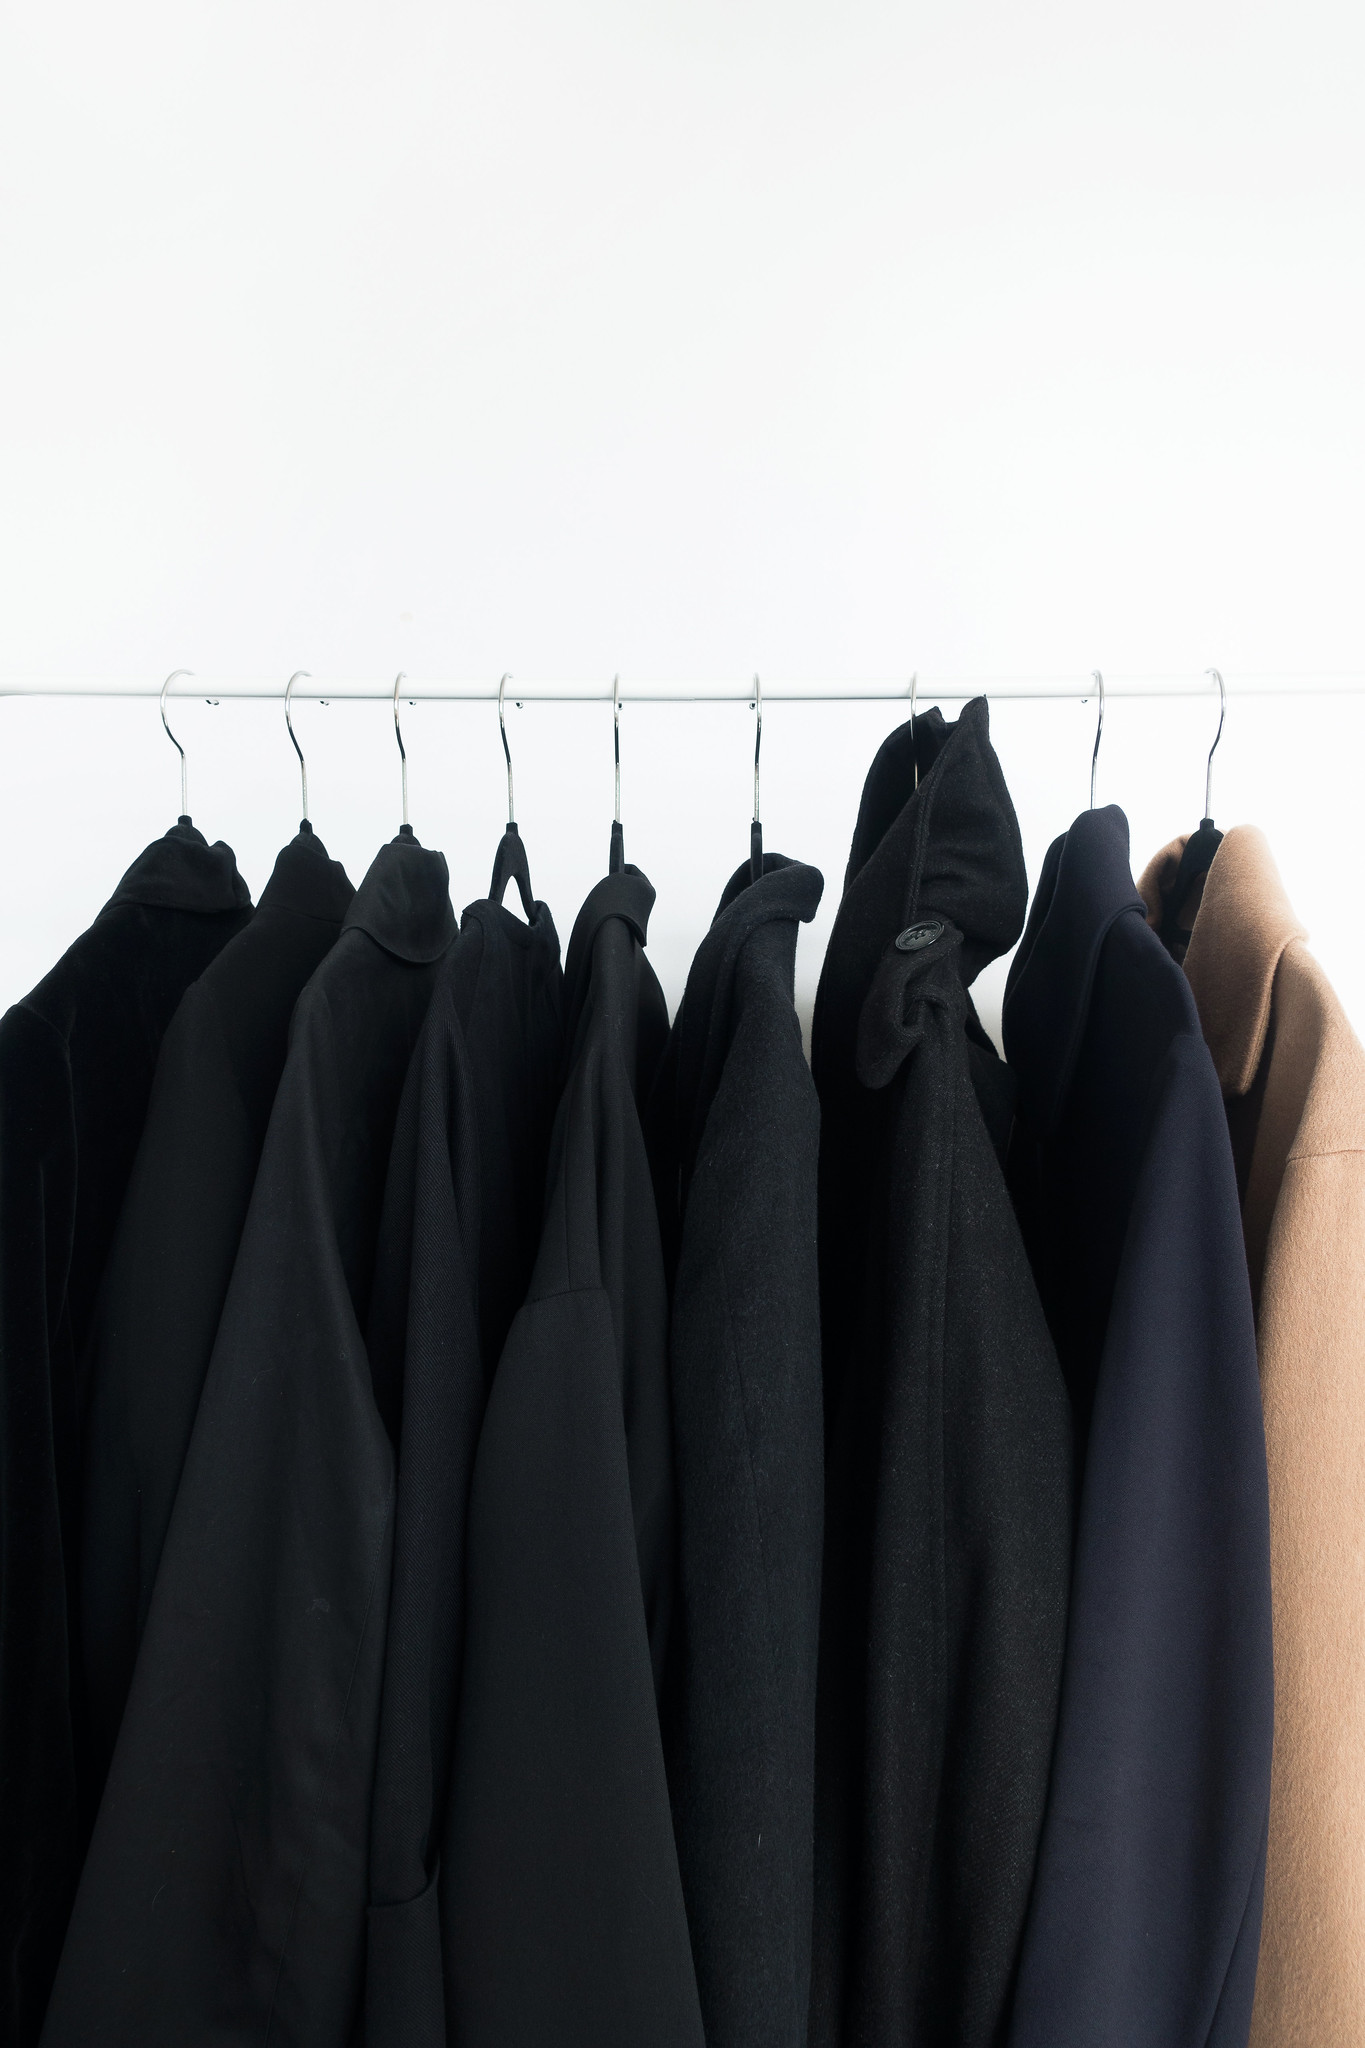 3 Reasons To Convert To A Minimal Wardrobe